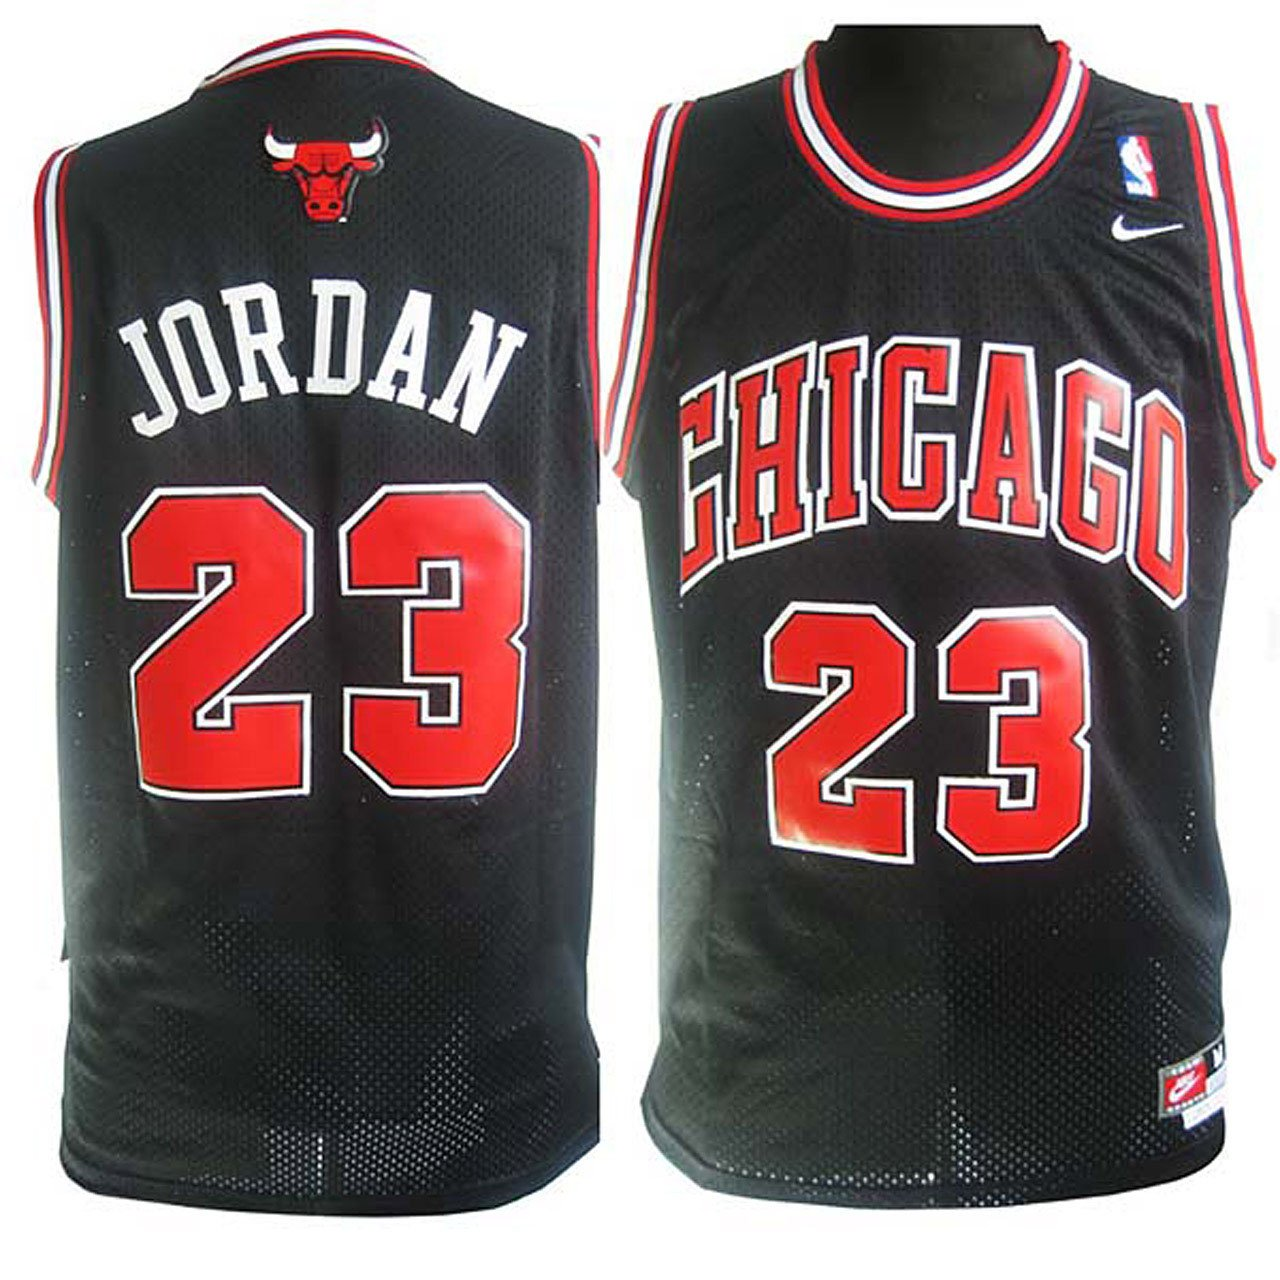 Michael Jordan Chicago Bulls #23 Soul Black Stitched Jersey